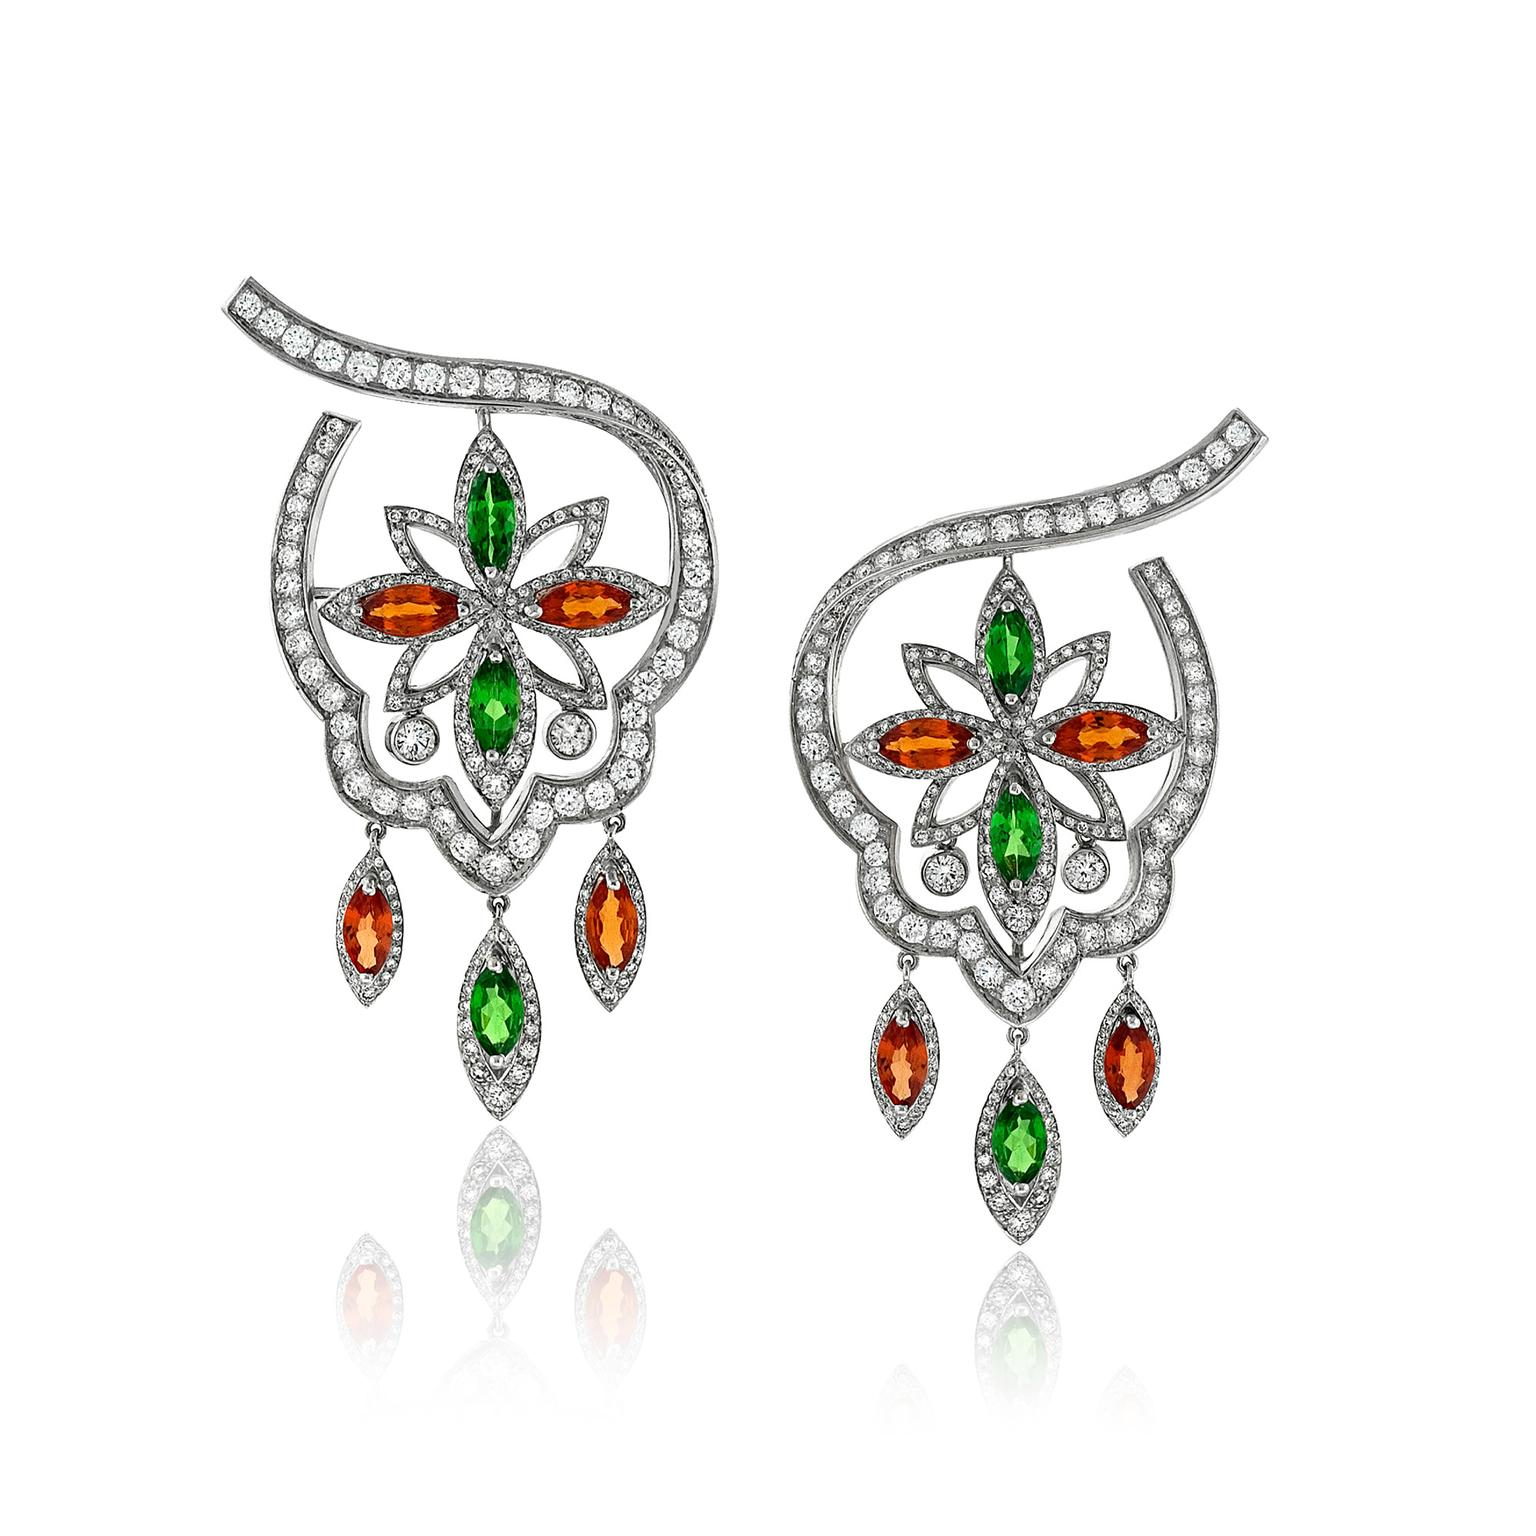 Niquesa Margherita sapphire, tsavorite and diamond earrings